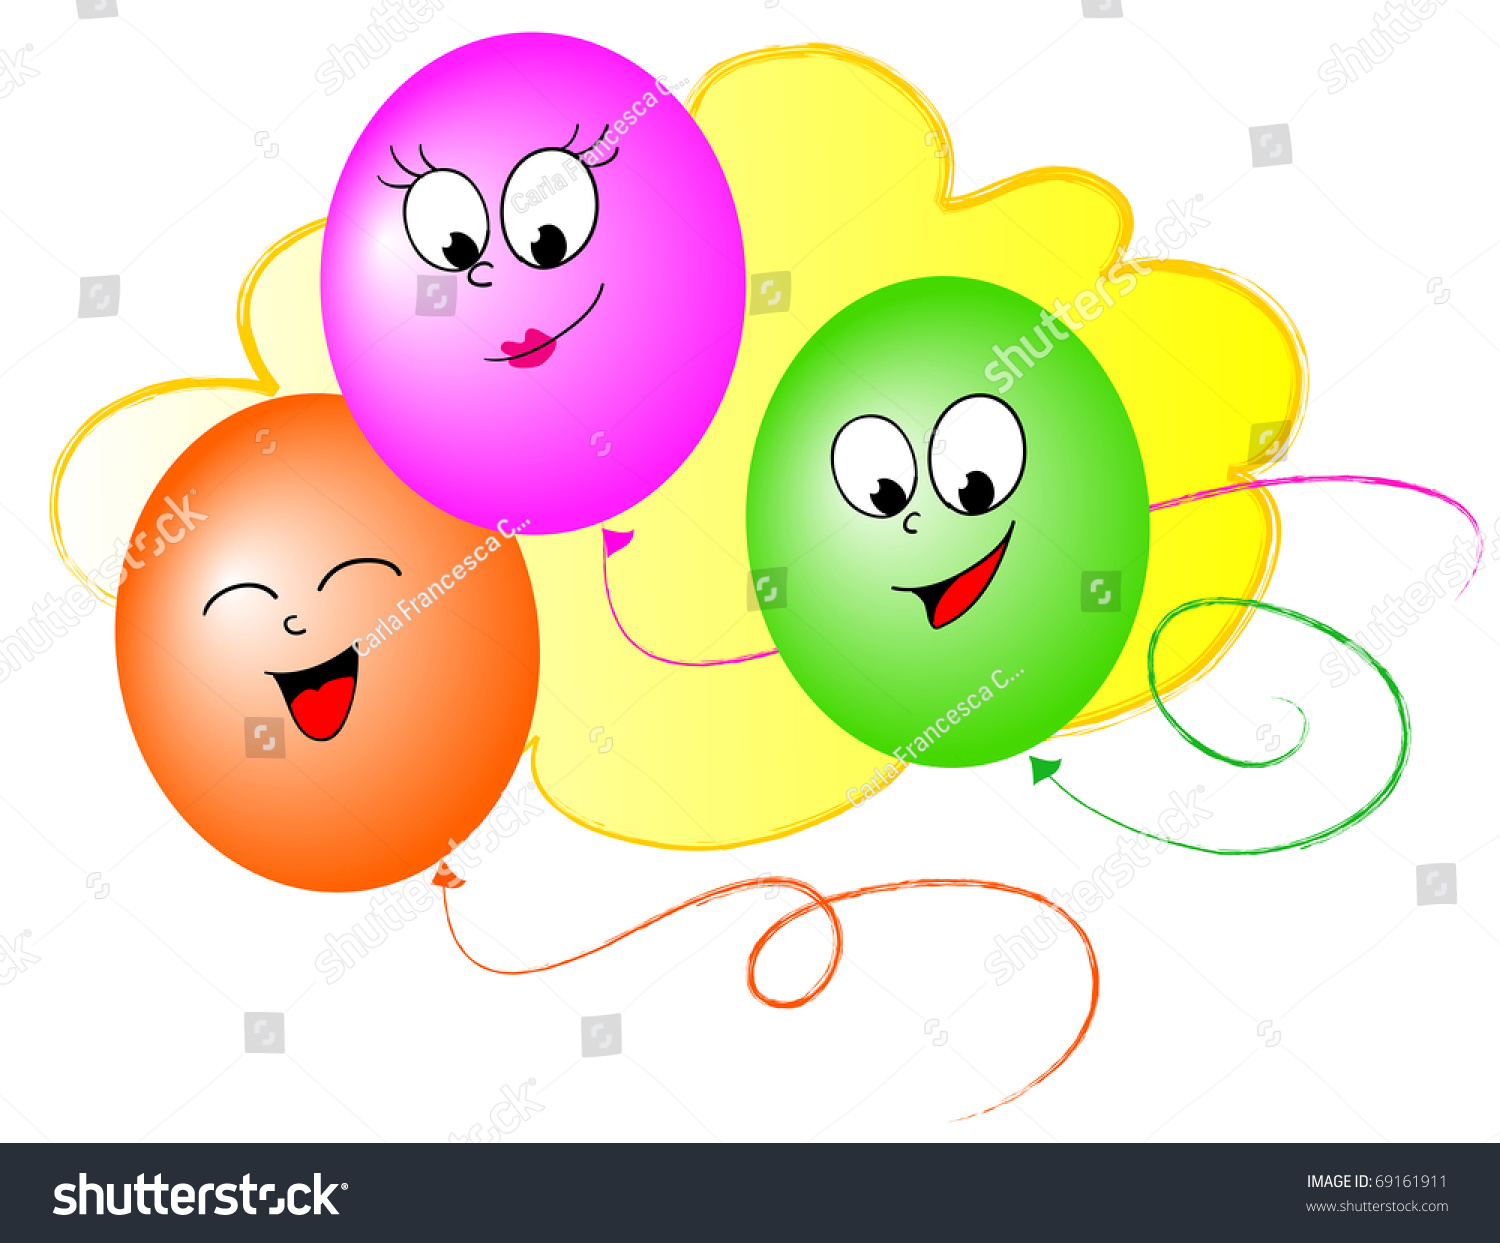 Funny balloon faces - Three Funny Balloon With Smiling Faces Preview Save To A Lightbox